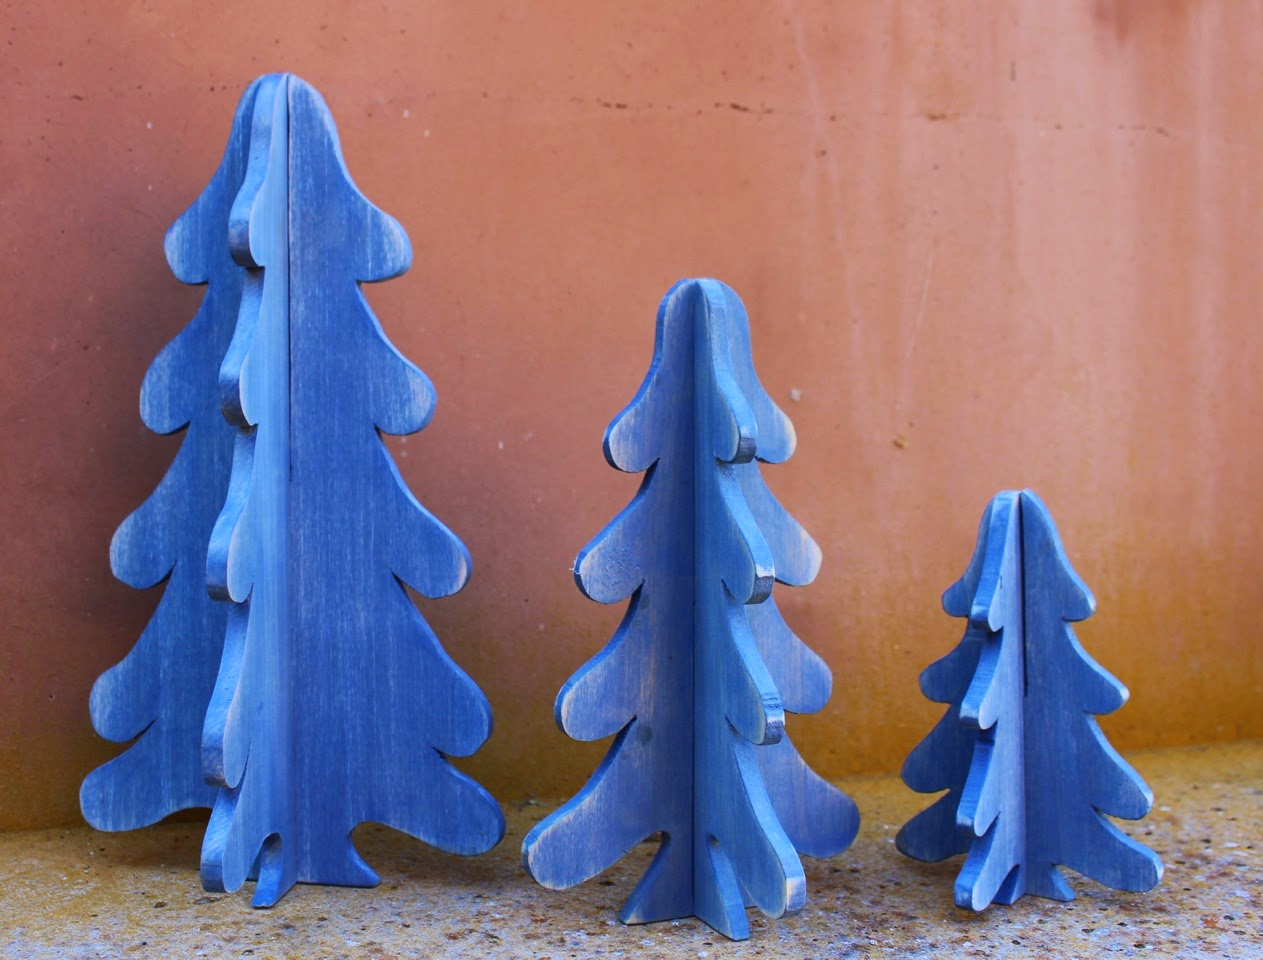 Laurie's-projects: 3-D Wooden Christmas Trees